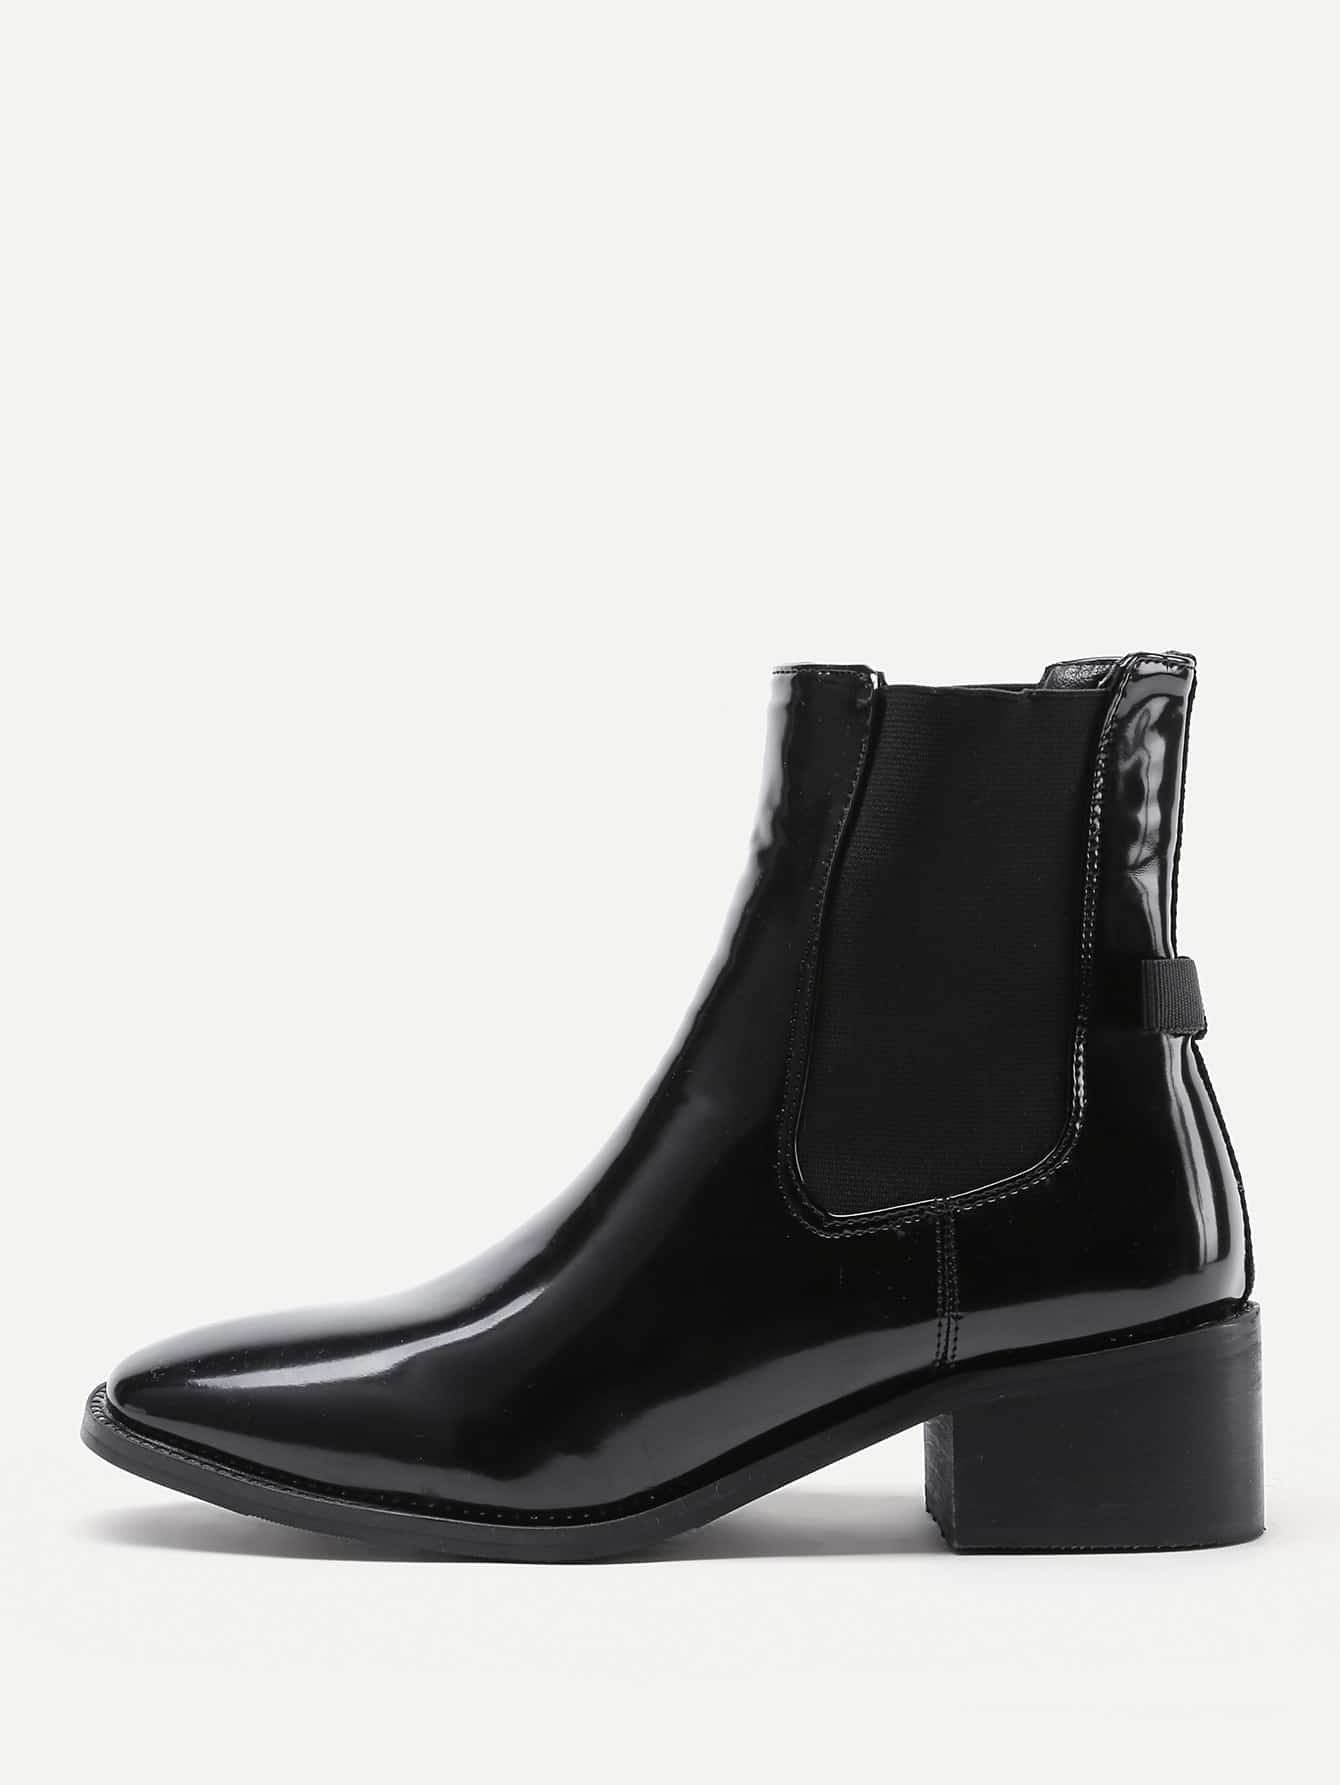 Image of Almond Toe Patent Leather Ankle Boots